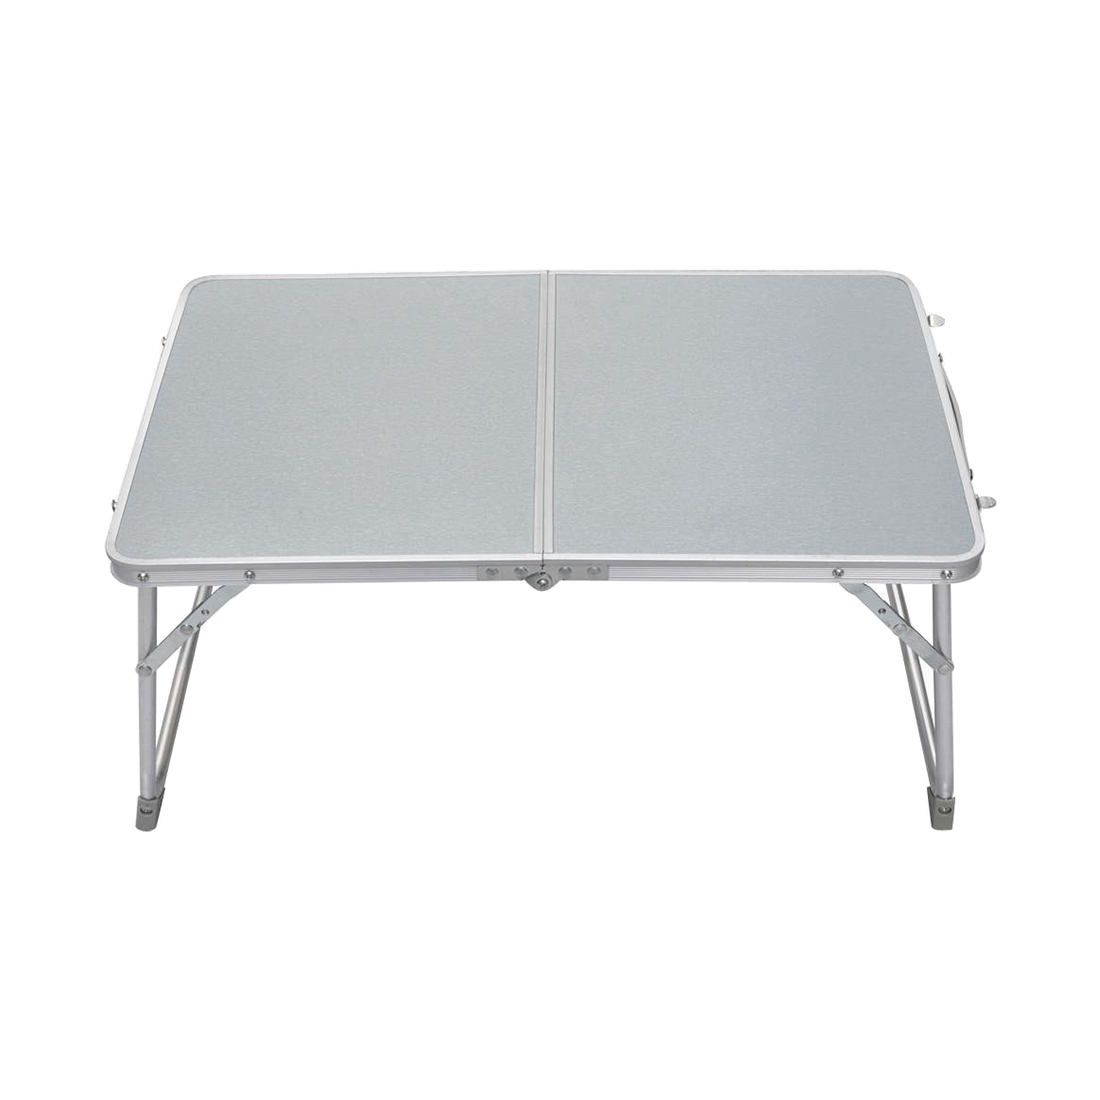 Small 62x41x28cm/24.4x16.1x11 PC Laptop Table Bed Desk Camping Picnic BBQ<br>